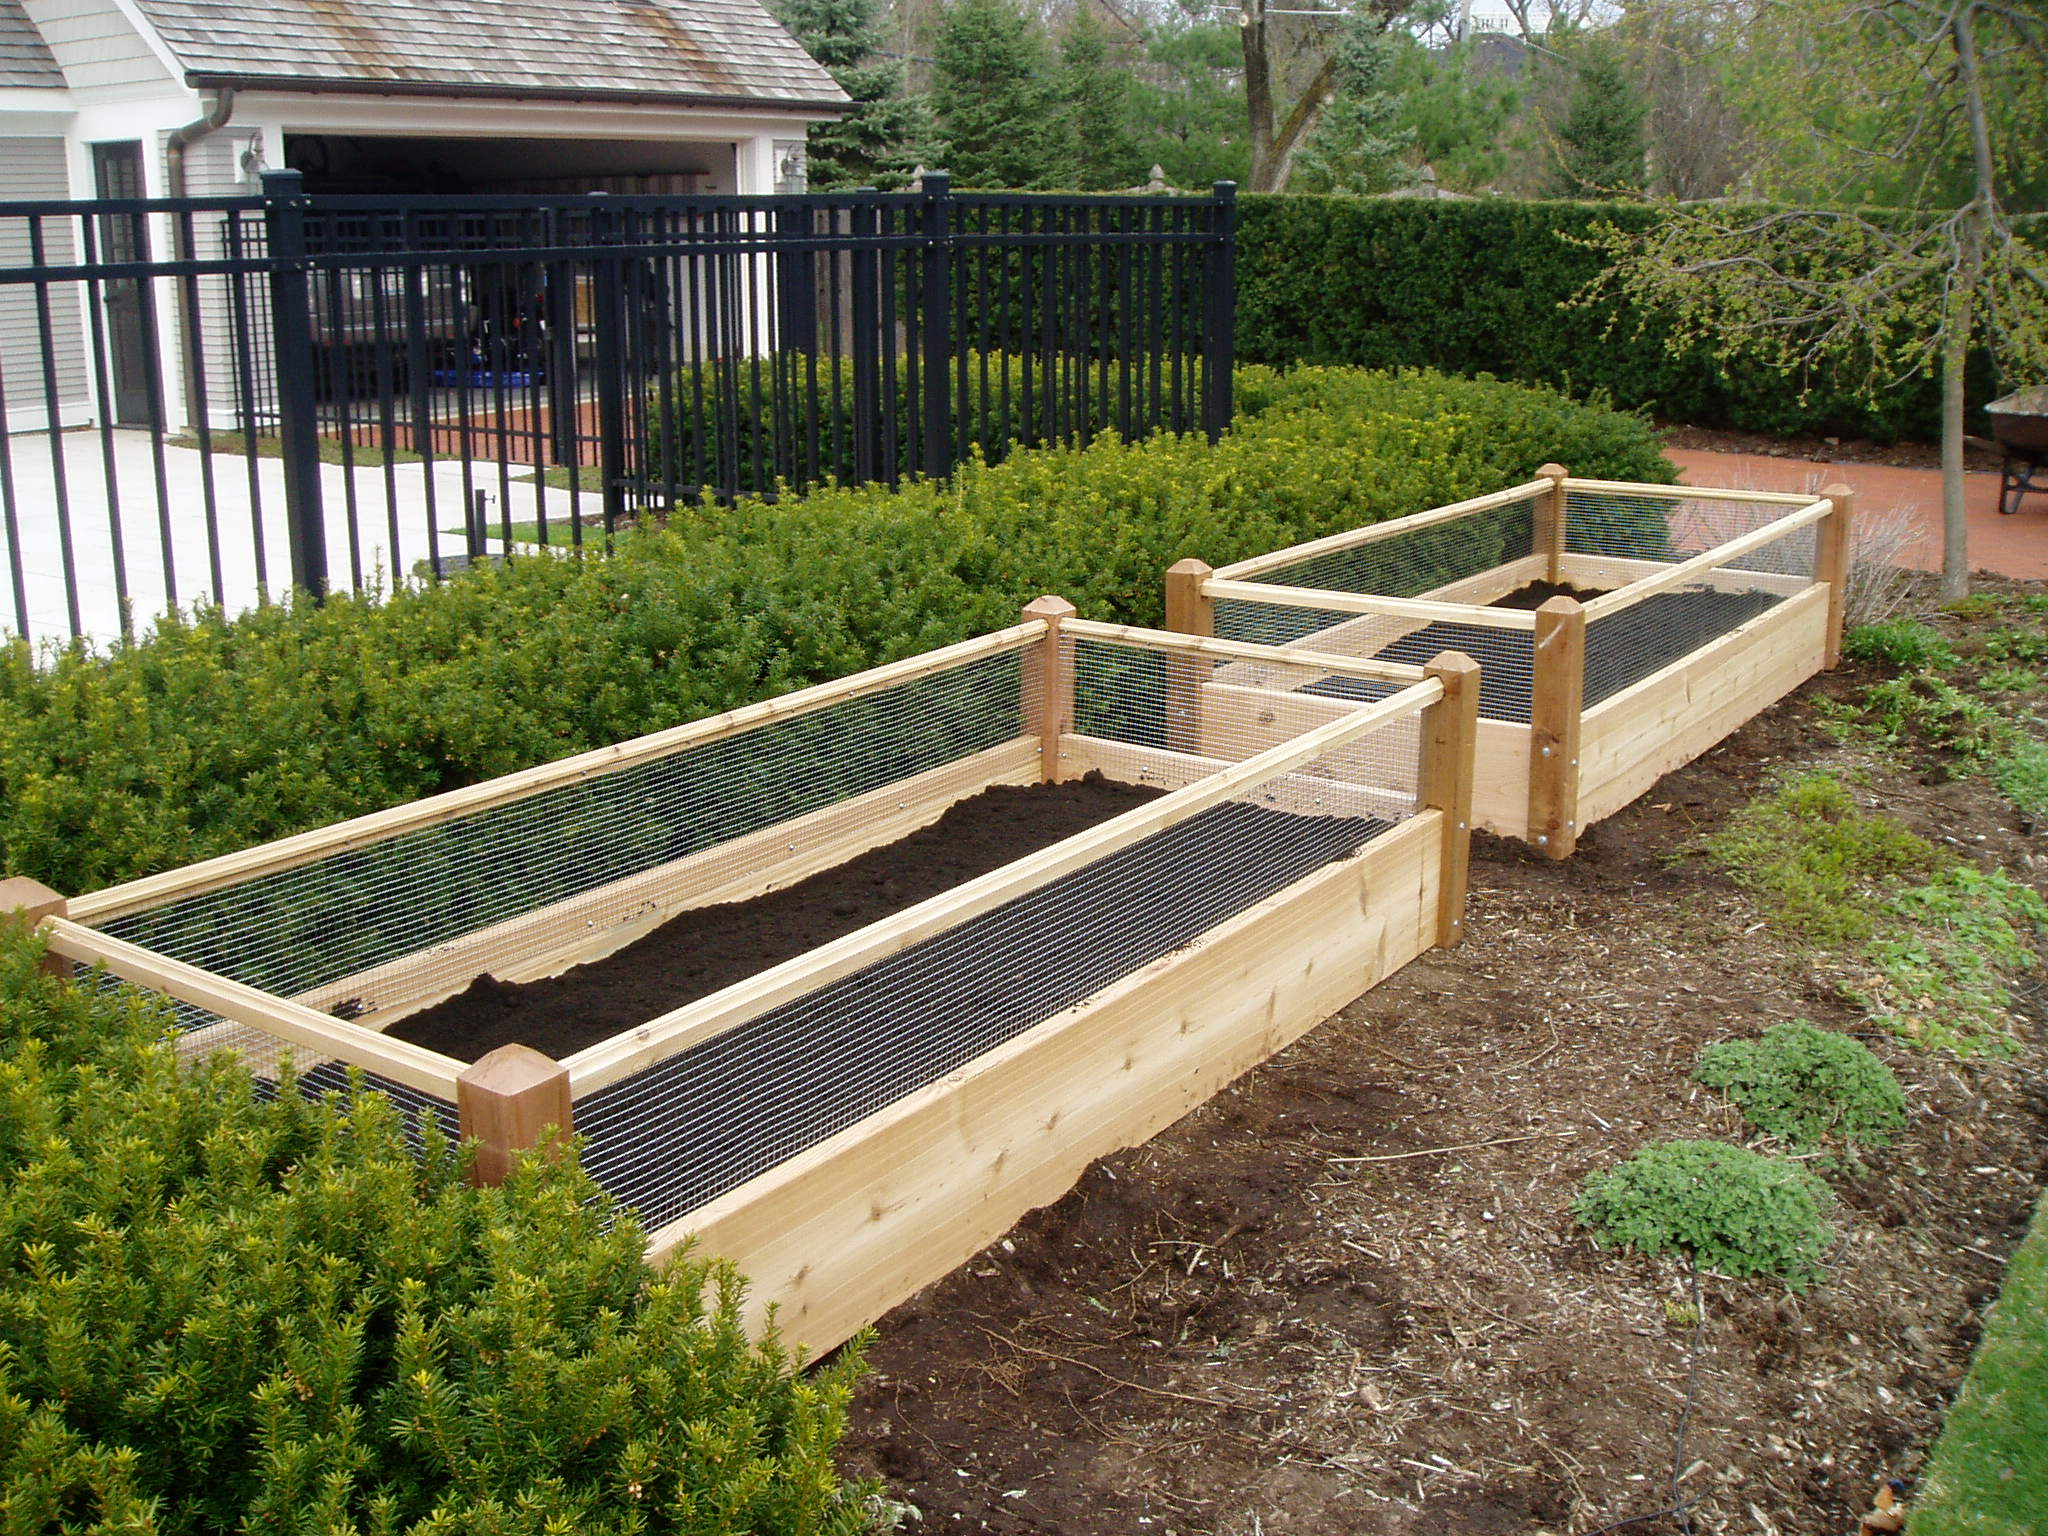 two raised garden beds with rabbit railing 3x8x2. Black Bedroom Furniture Sets. Home Design Ideas